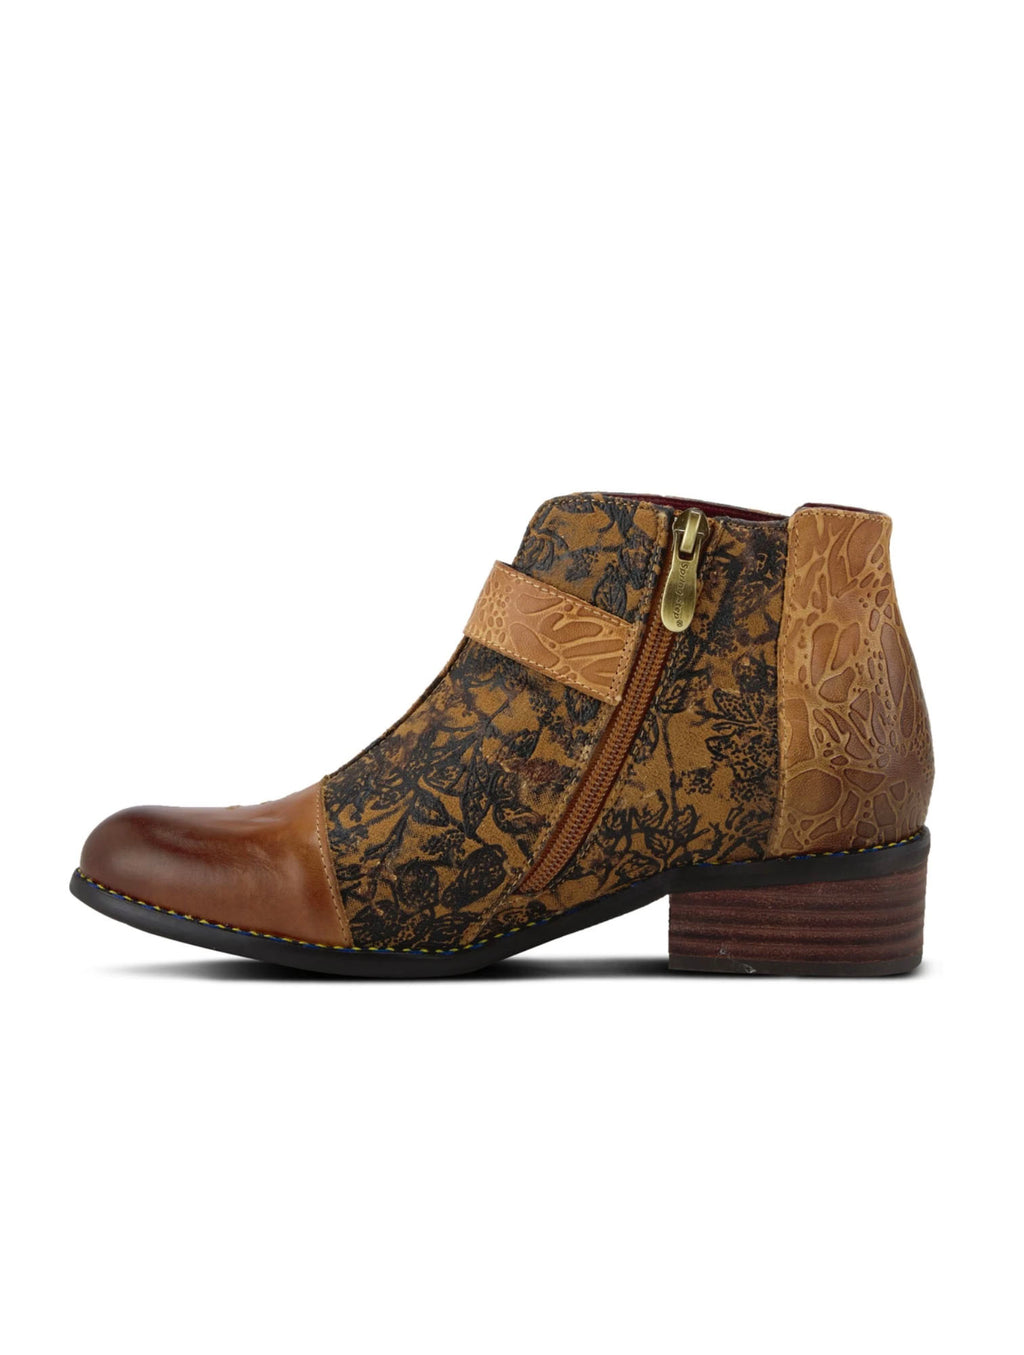 L'Artiste Georgiana Bootie in Camel